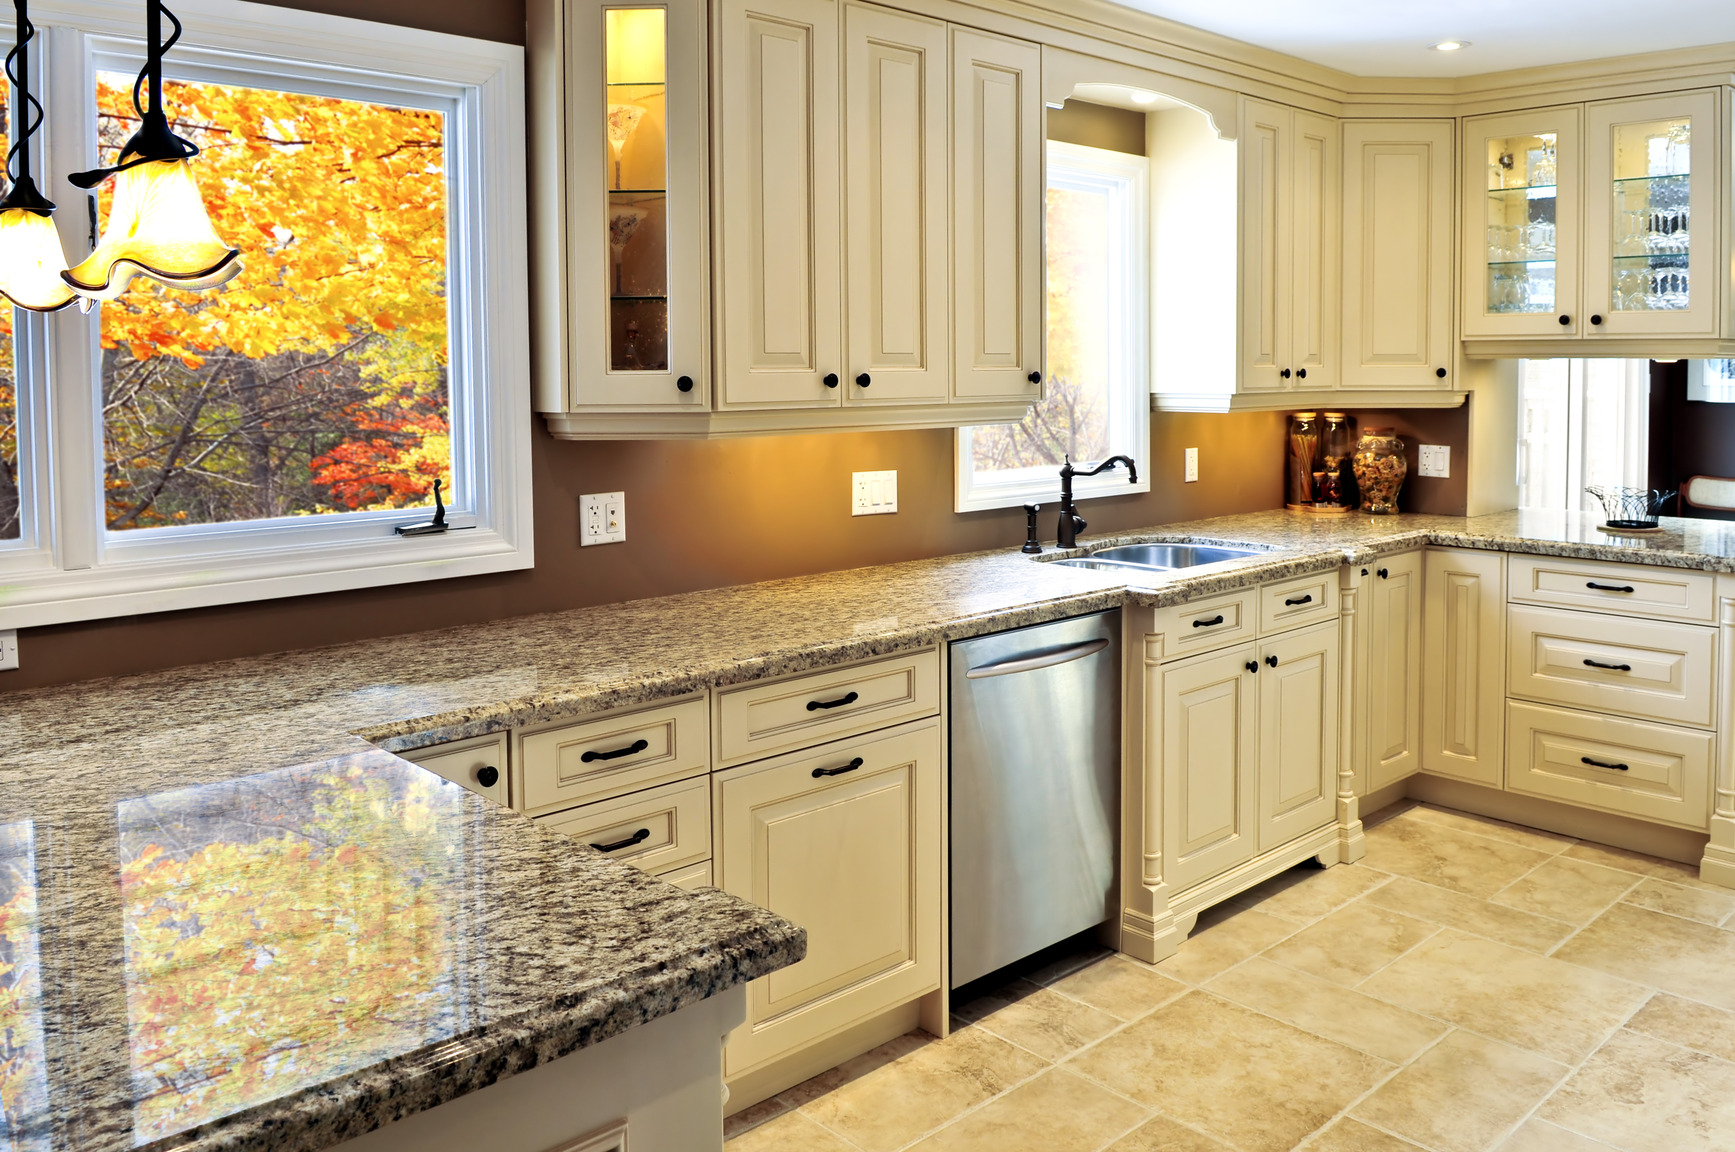 5 quick steps to clean you kitchen for this festive season cleaning kitchen cabinets Arrange kitchen cabinets in 5 steps Clean Kitchen